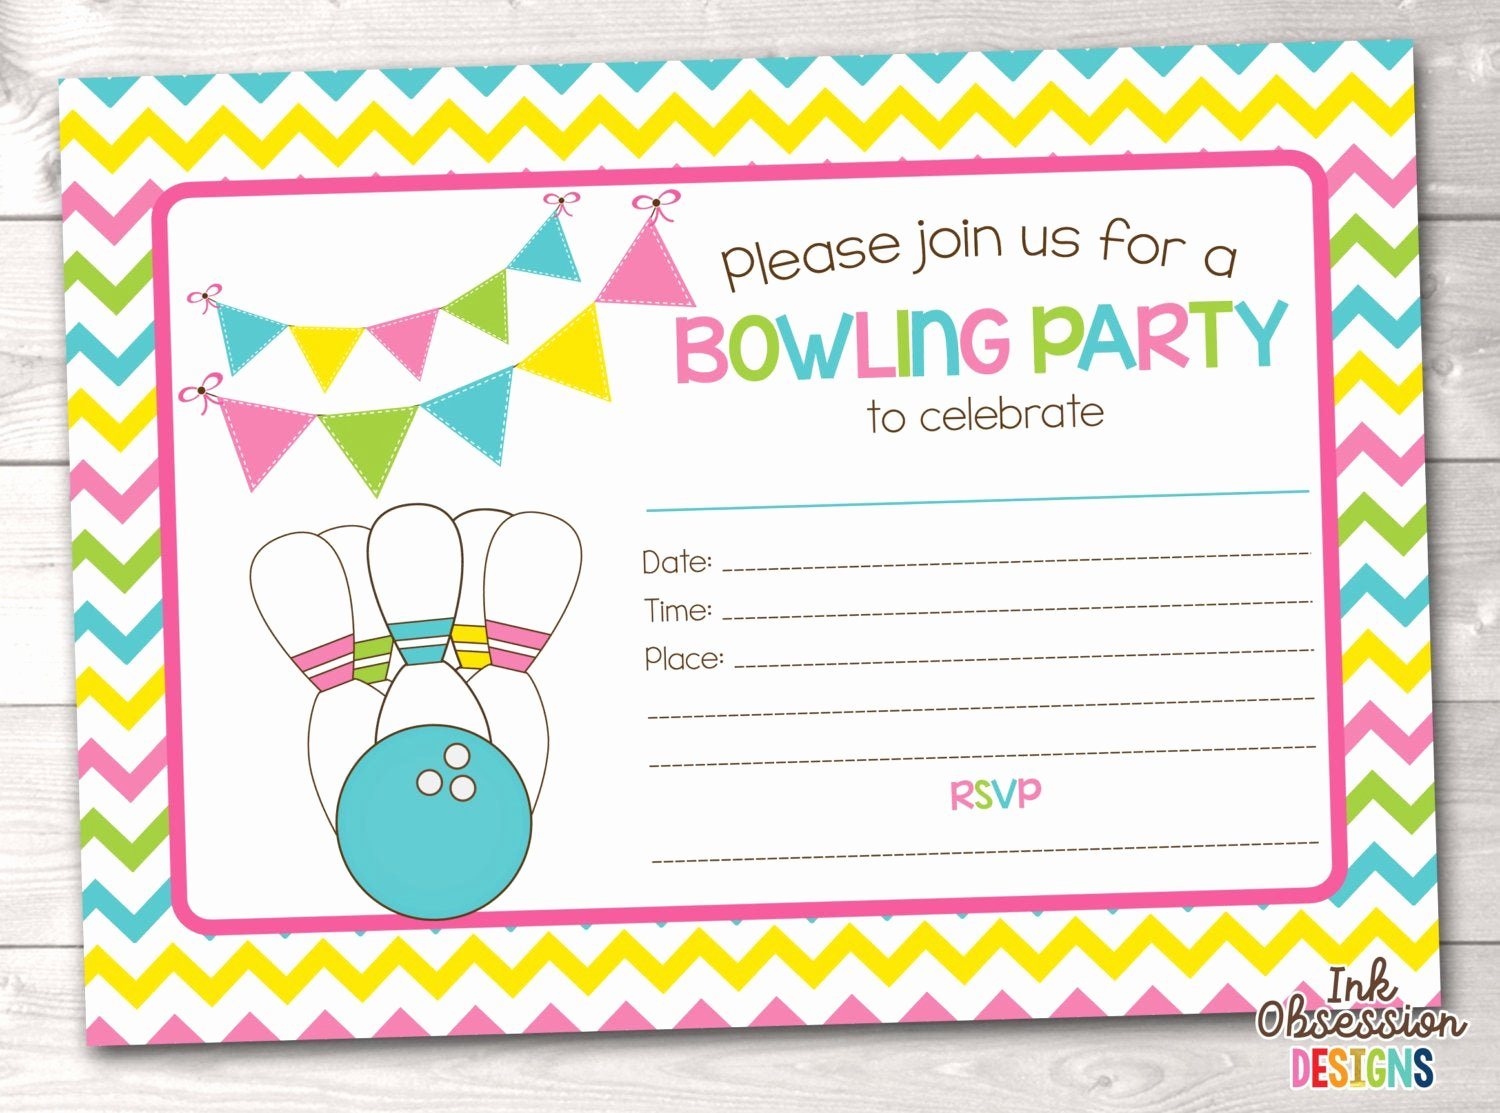 Bowling Party Invite Template Beautiful Printable Bowling Party Invitation Fill In the Blank Birthday